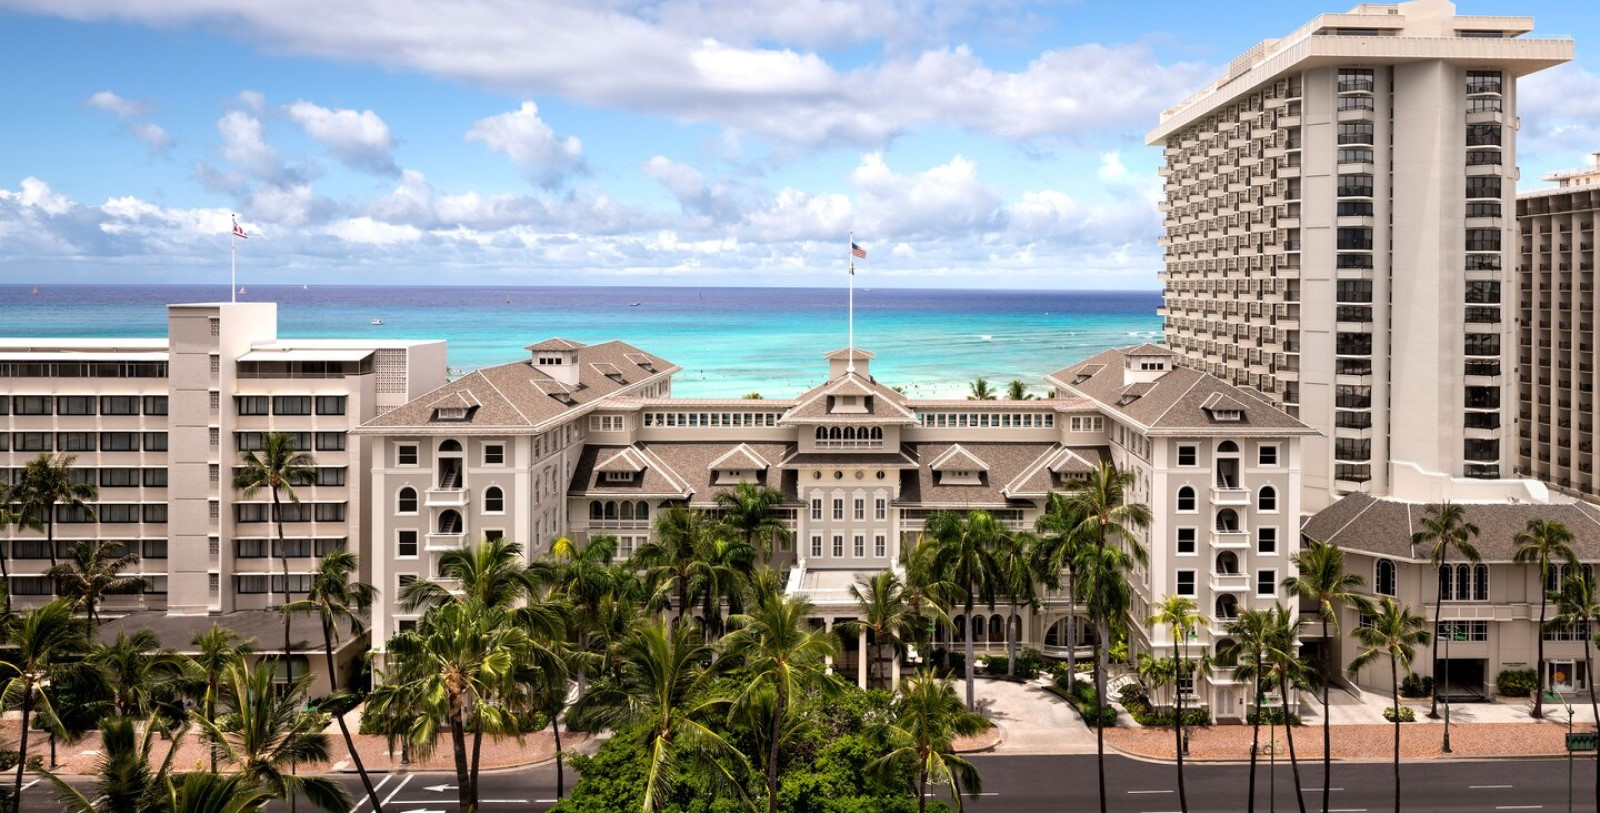 Image of Exterior & Ocean View, Moana Surfrider, A Westin Resort & Spa, Honolulu, Hawaii, 1901, Member of Historic Hotels of America, Overview